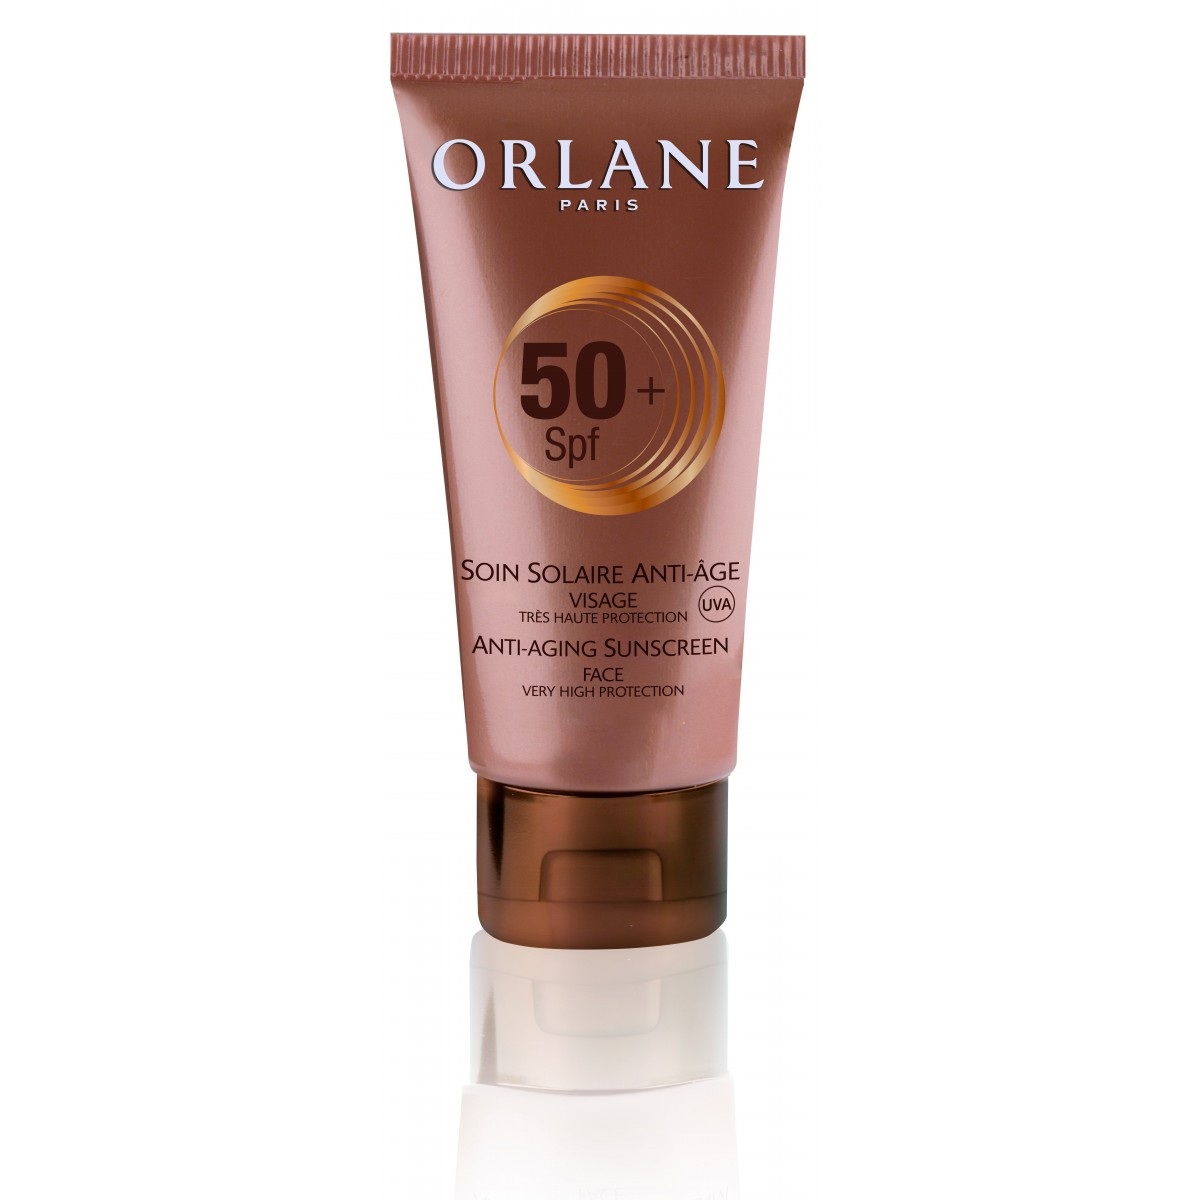 ORLANE SOIN SOLAIRE ANTI-AGE VISAGE SPF 50